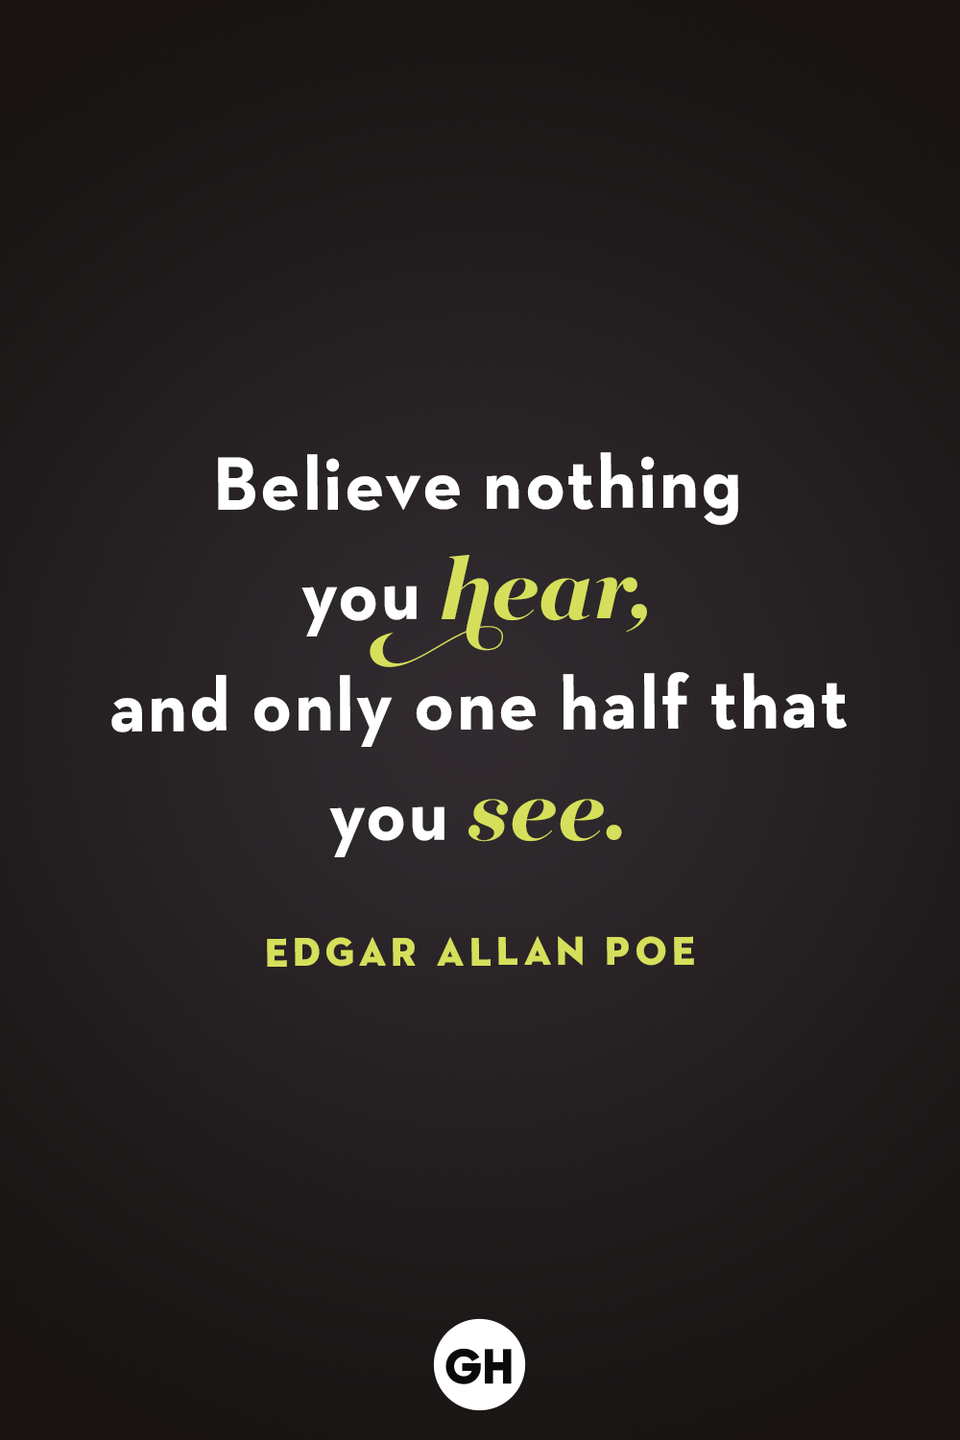 <p>Believe nothing you hear, and only one half that you see. </p>